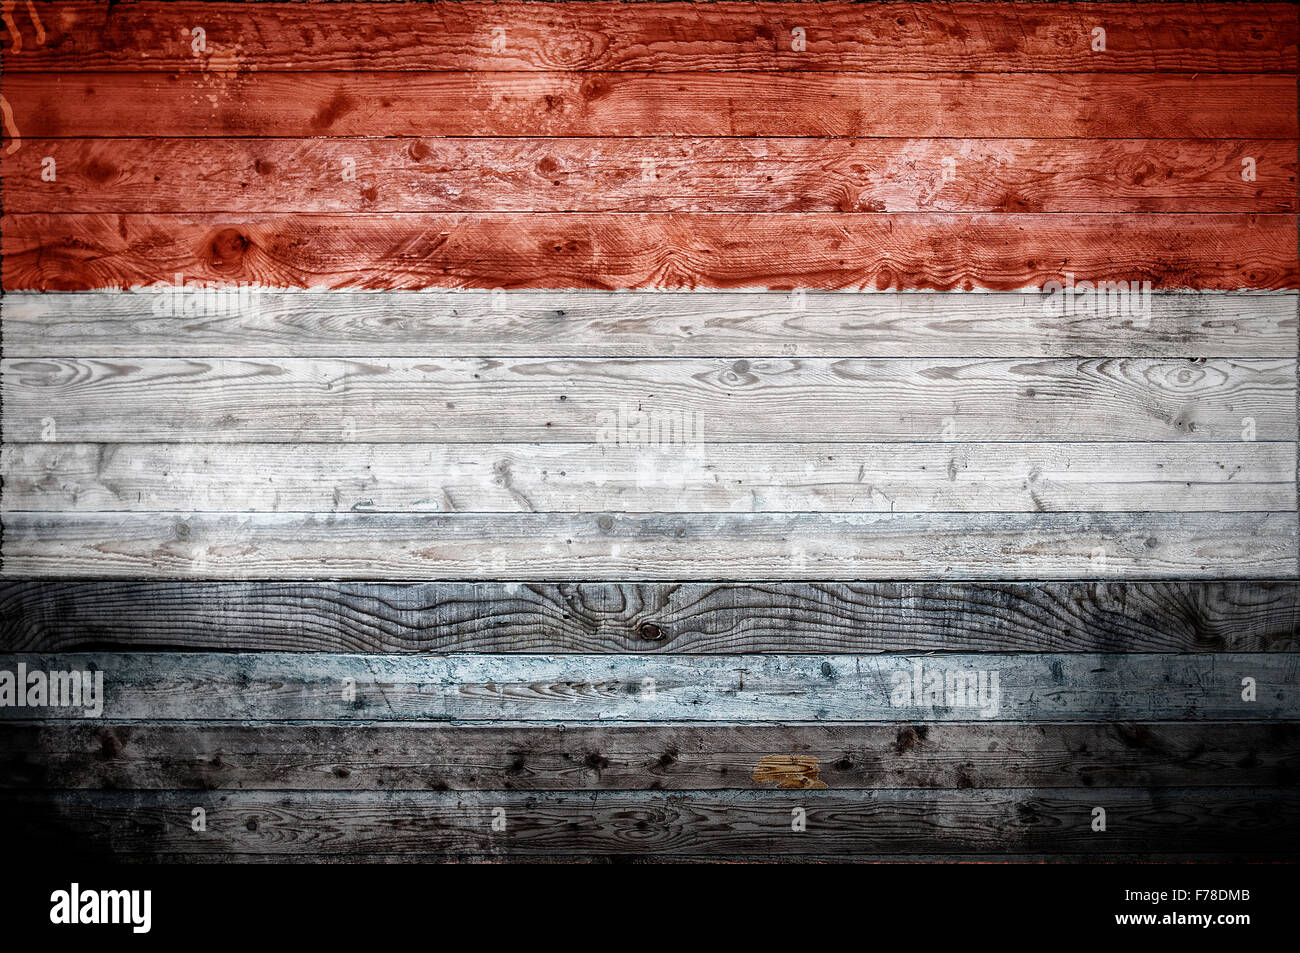 A vignetted background image of the flag of Yemen onto wooden boards of a wall or floor. Stock Photo